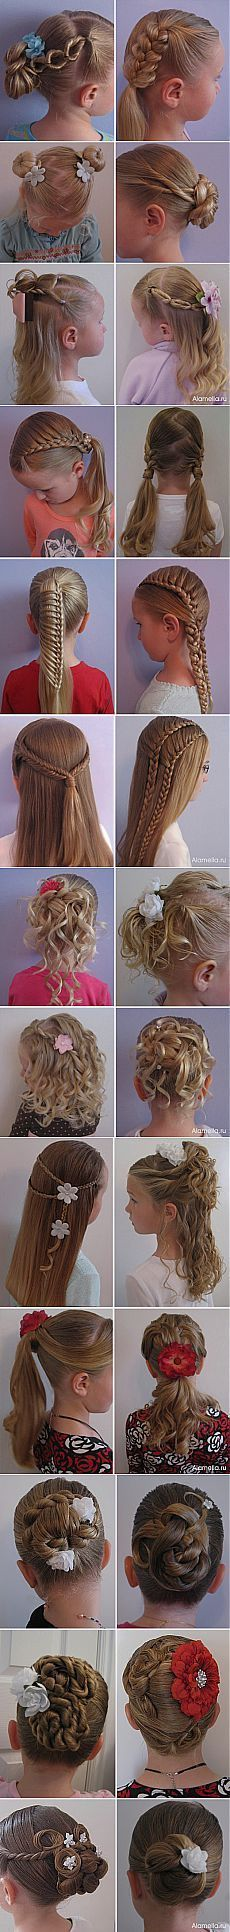 Hairstyles for girls.